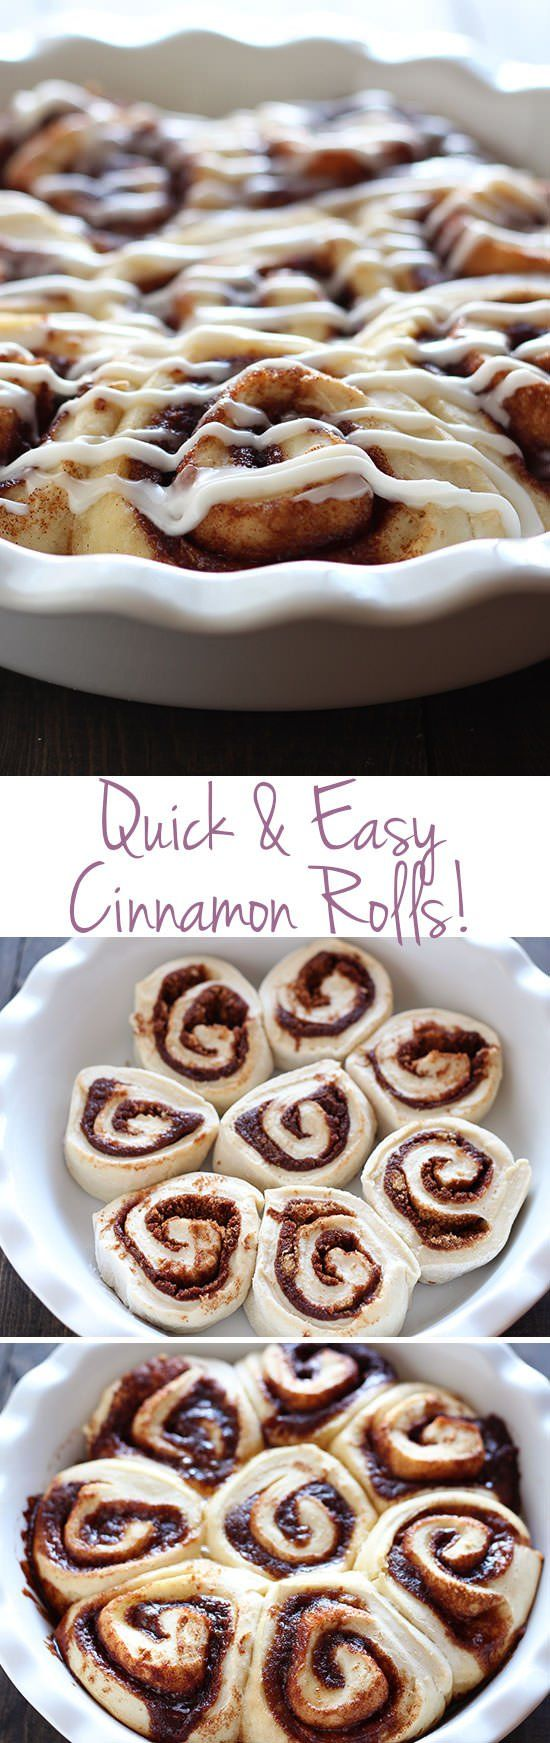 1 hour for homemade cinnamon rolls!? These look PERFECT.